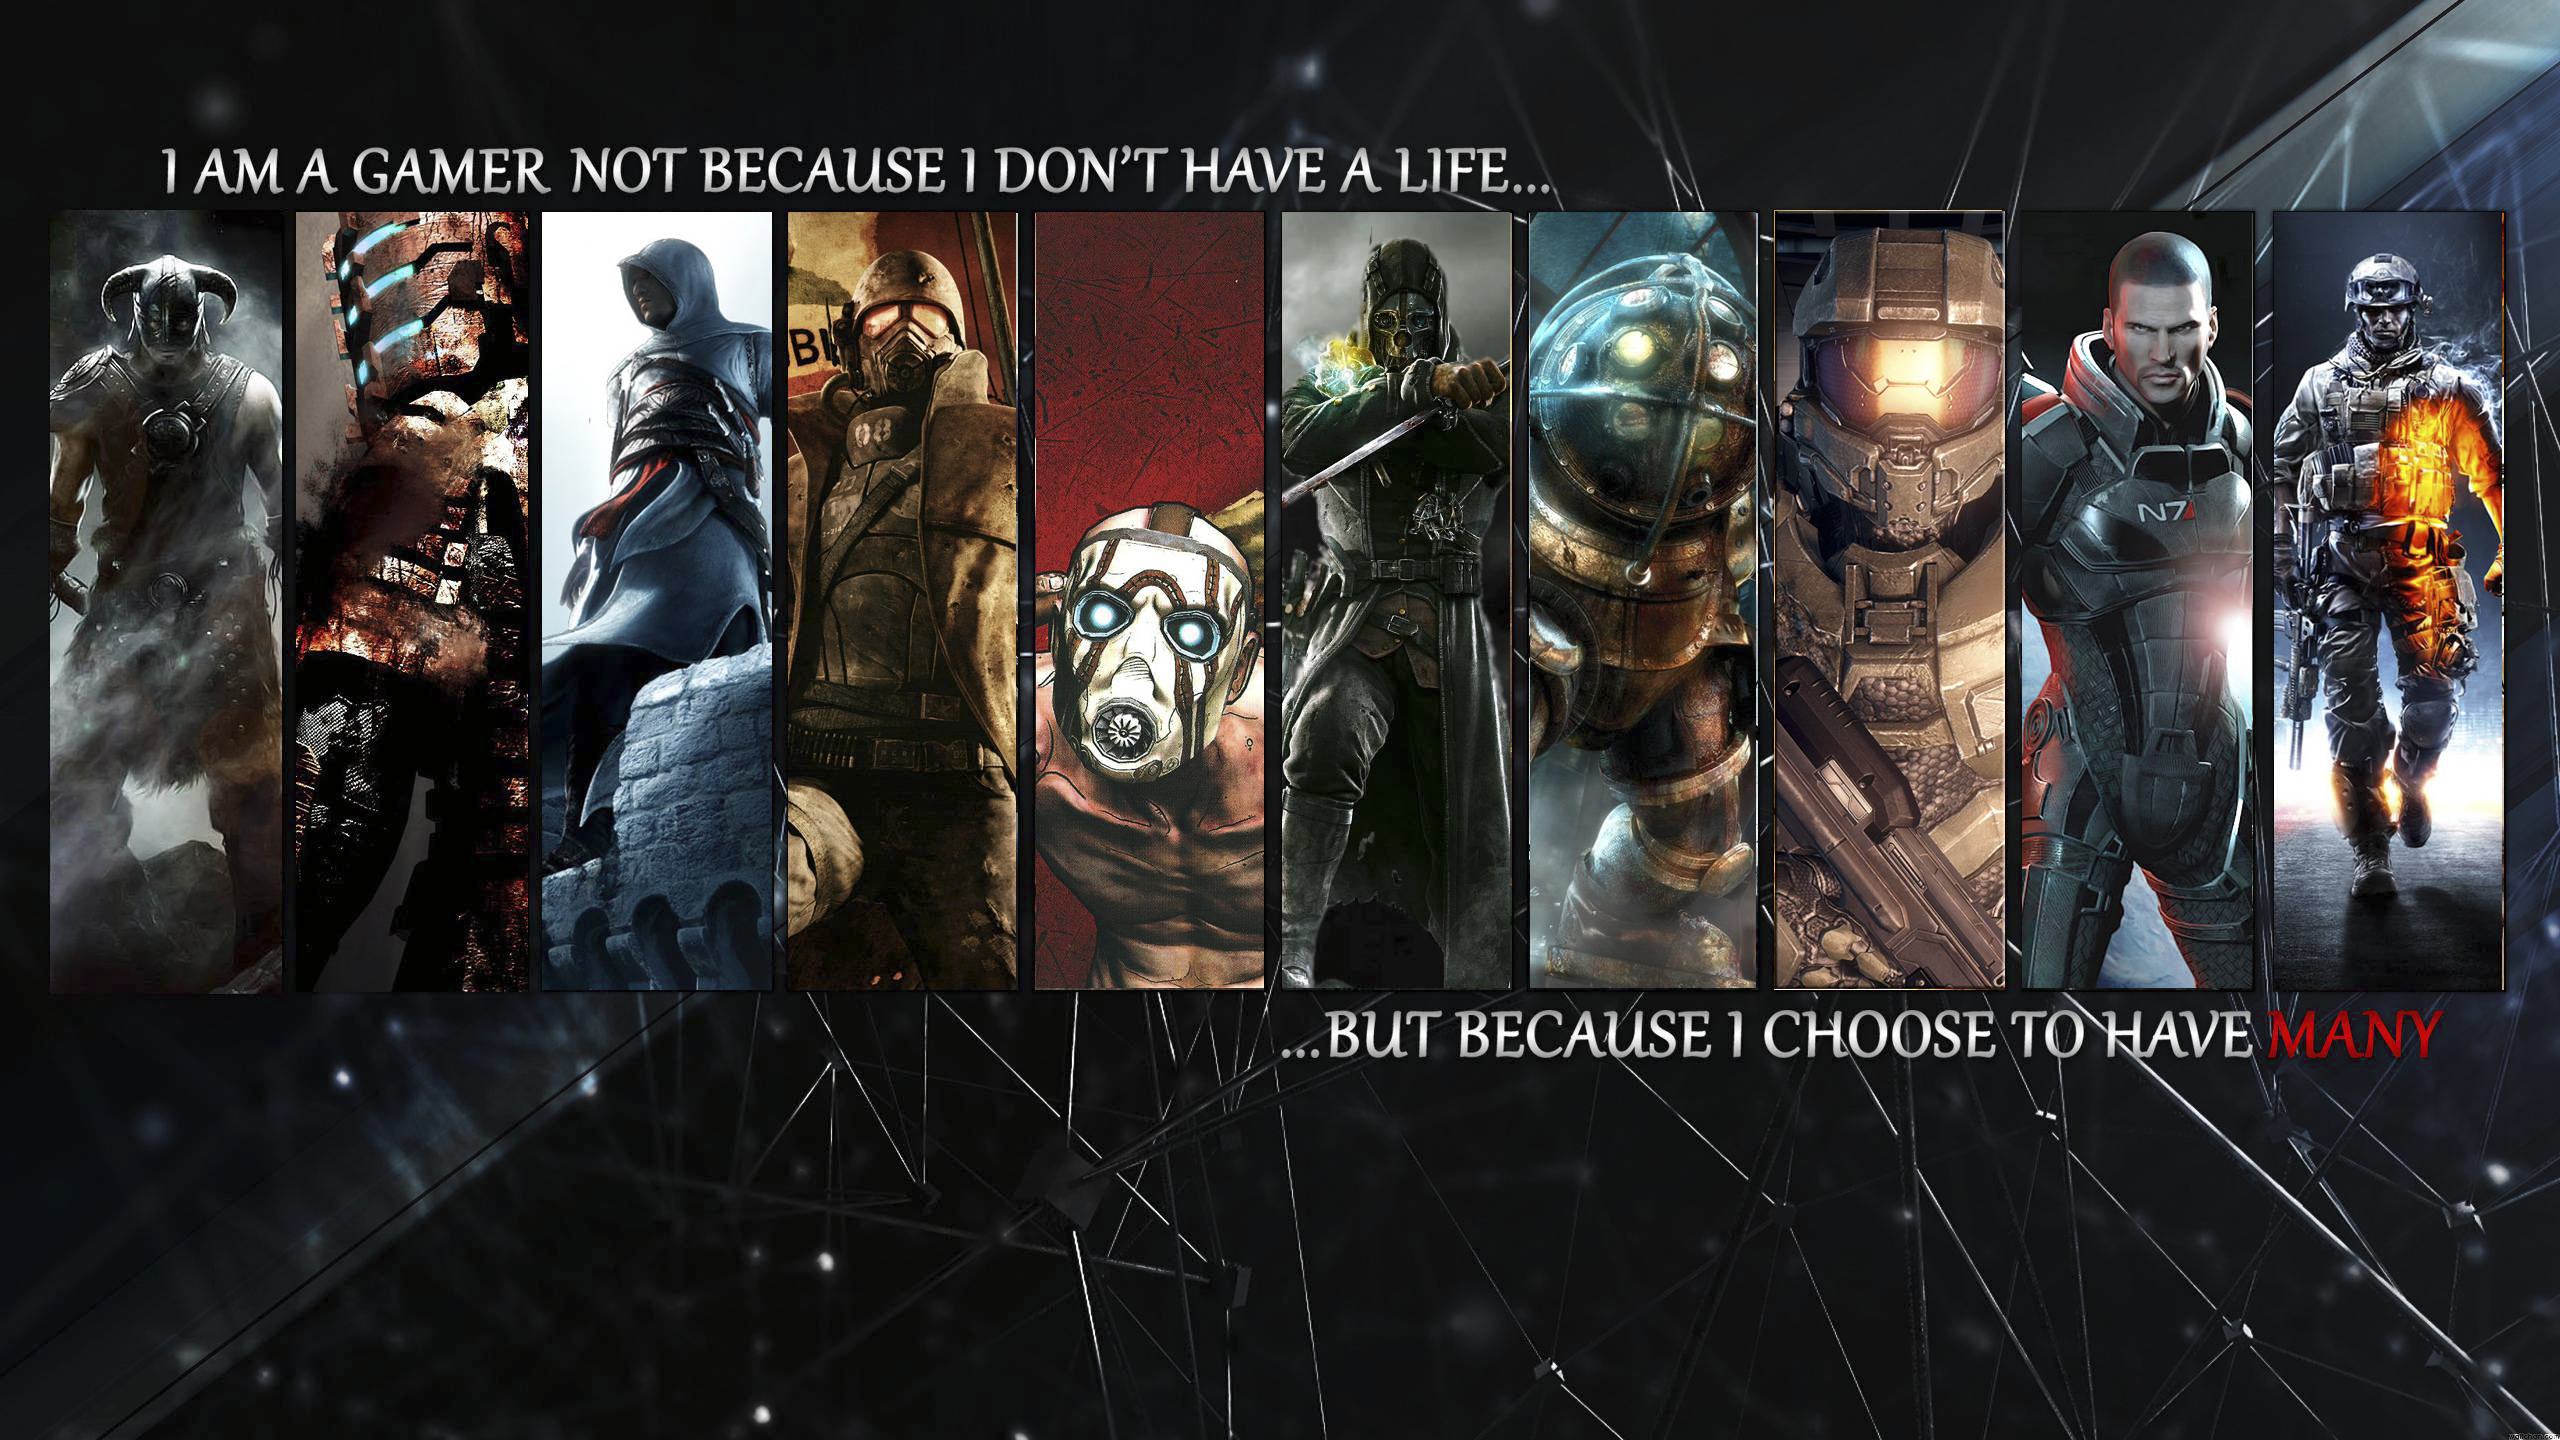 Video Games (general) Wallpaper #159720 - Resolution 2560x1440 px